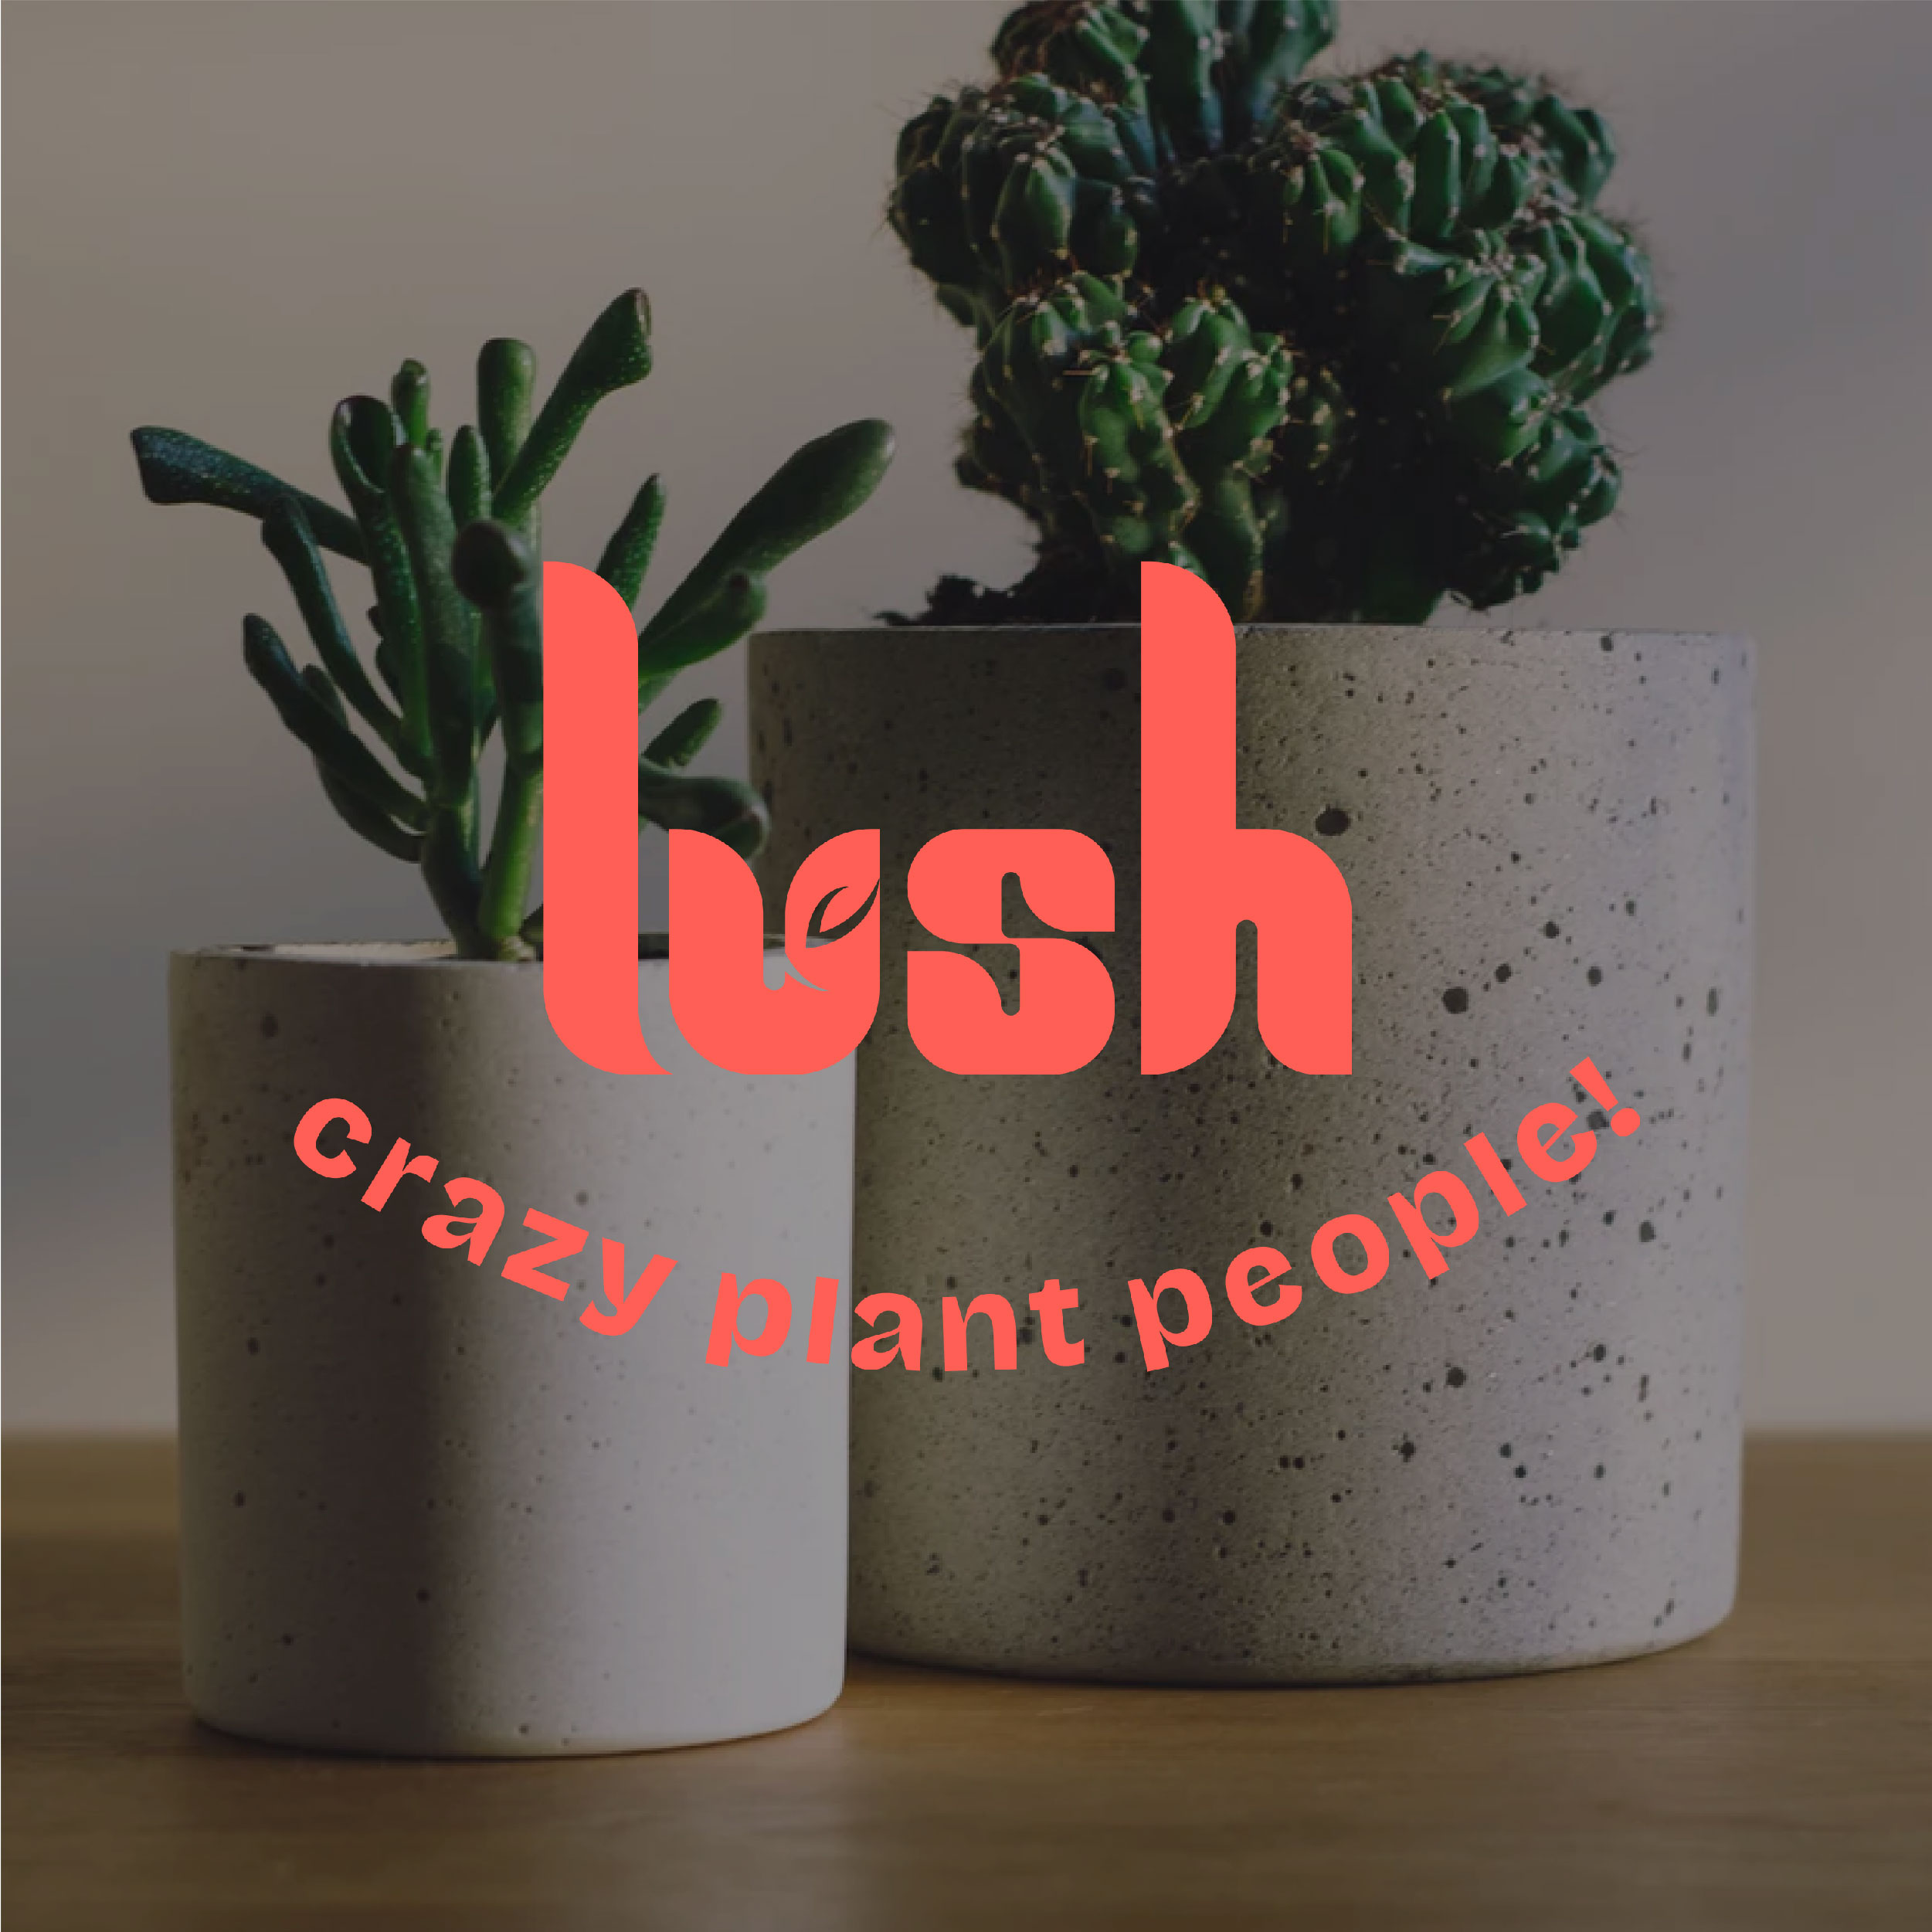 Lush Crazy Plant People Branding Designed by Aishwarya Agrawal